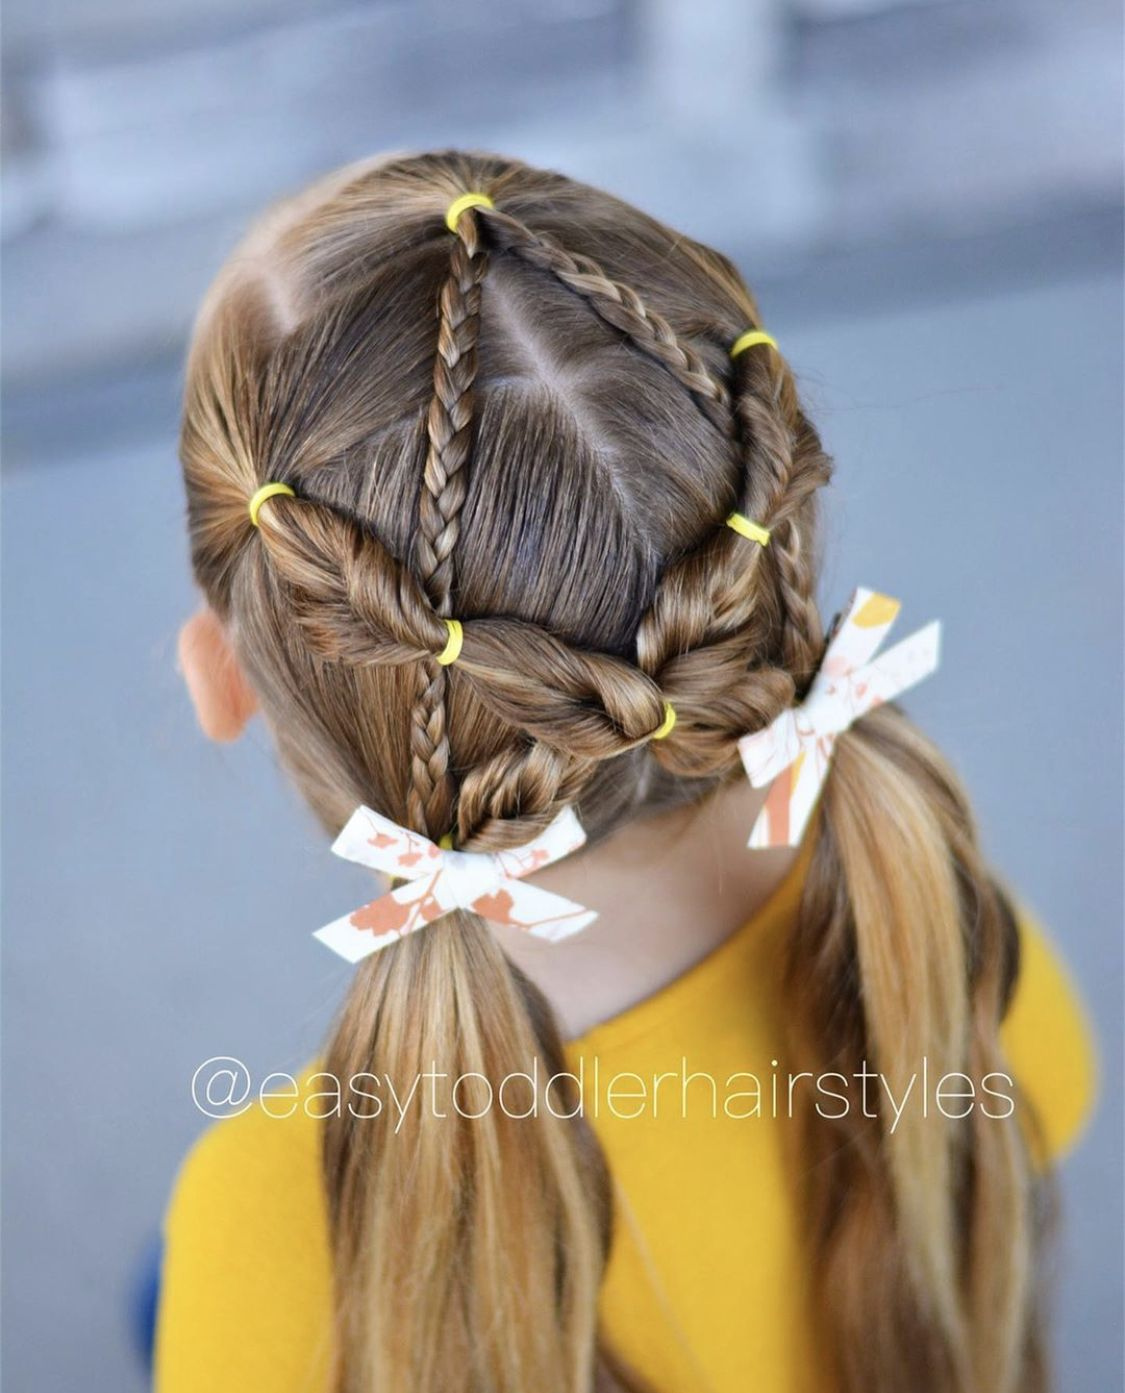 Pin By Jaylene Wiltsie On Girls Hairstyles (With Images